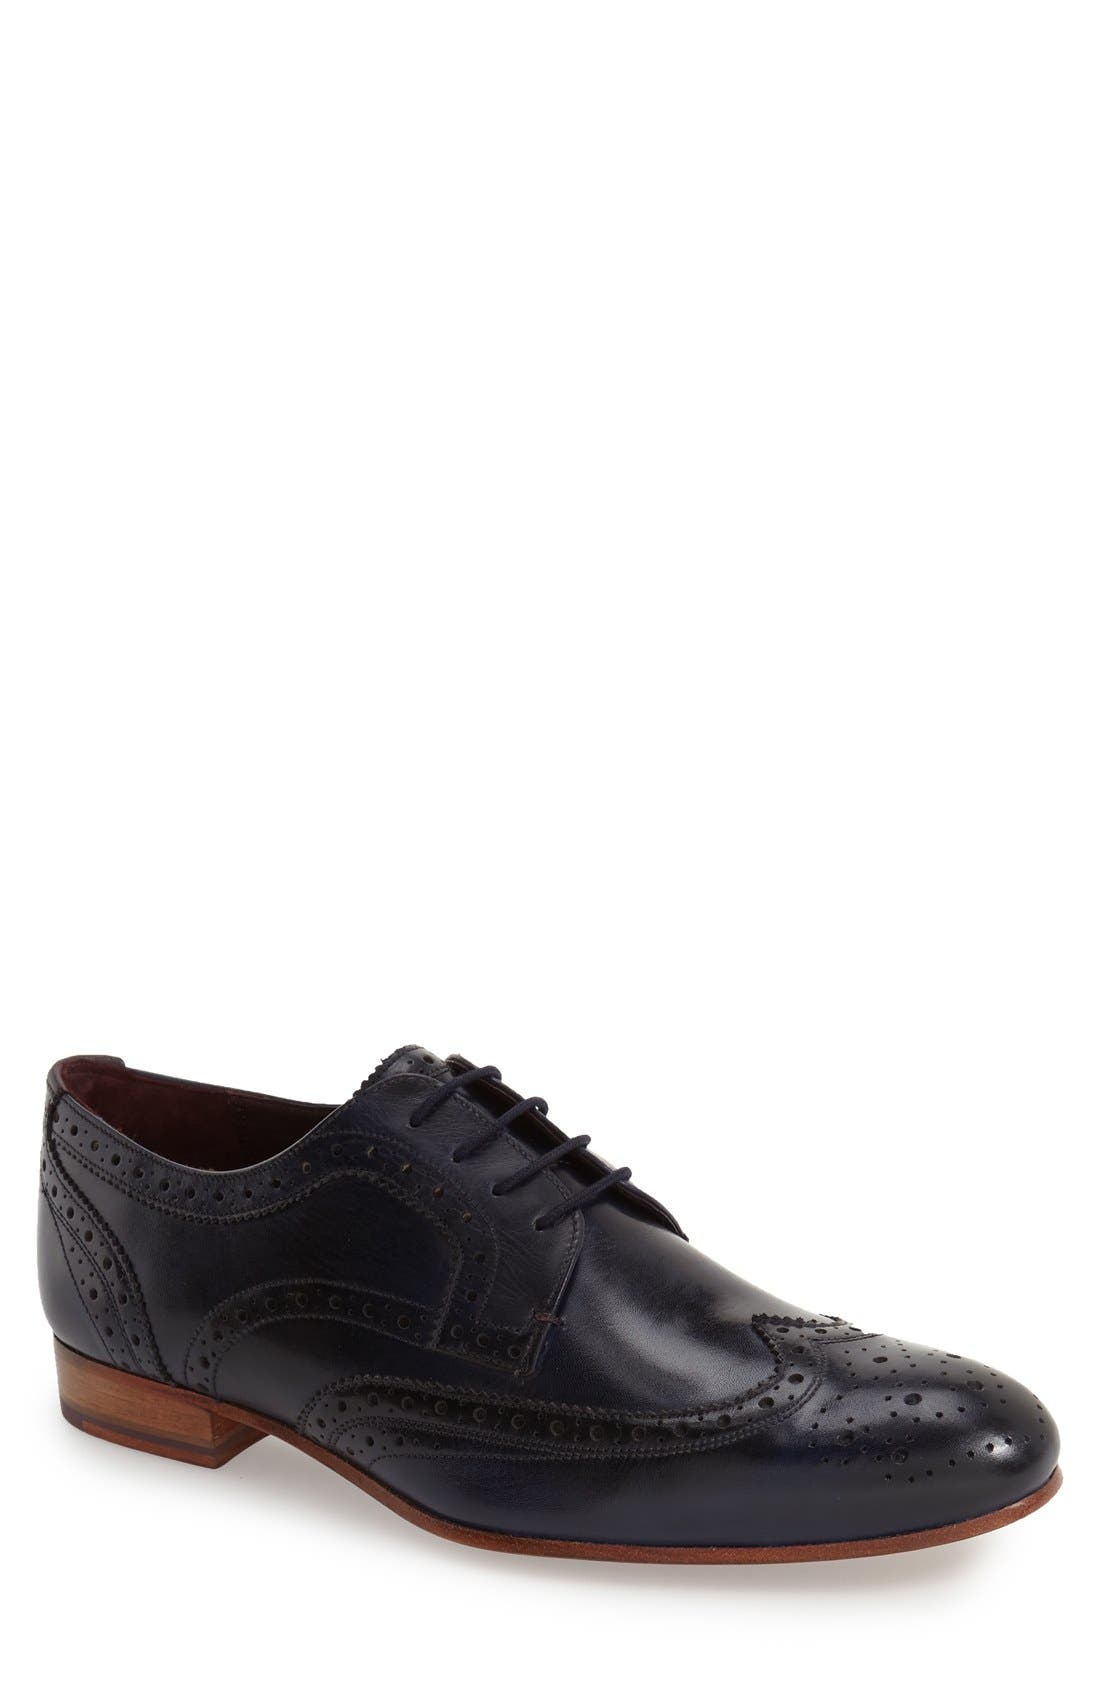 'Gryene' Wingtip Oxford,                         Main,                         color, Dark Blue